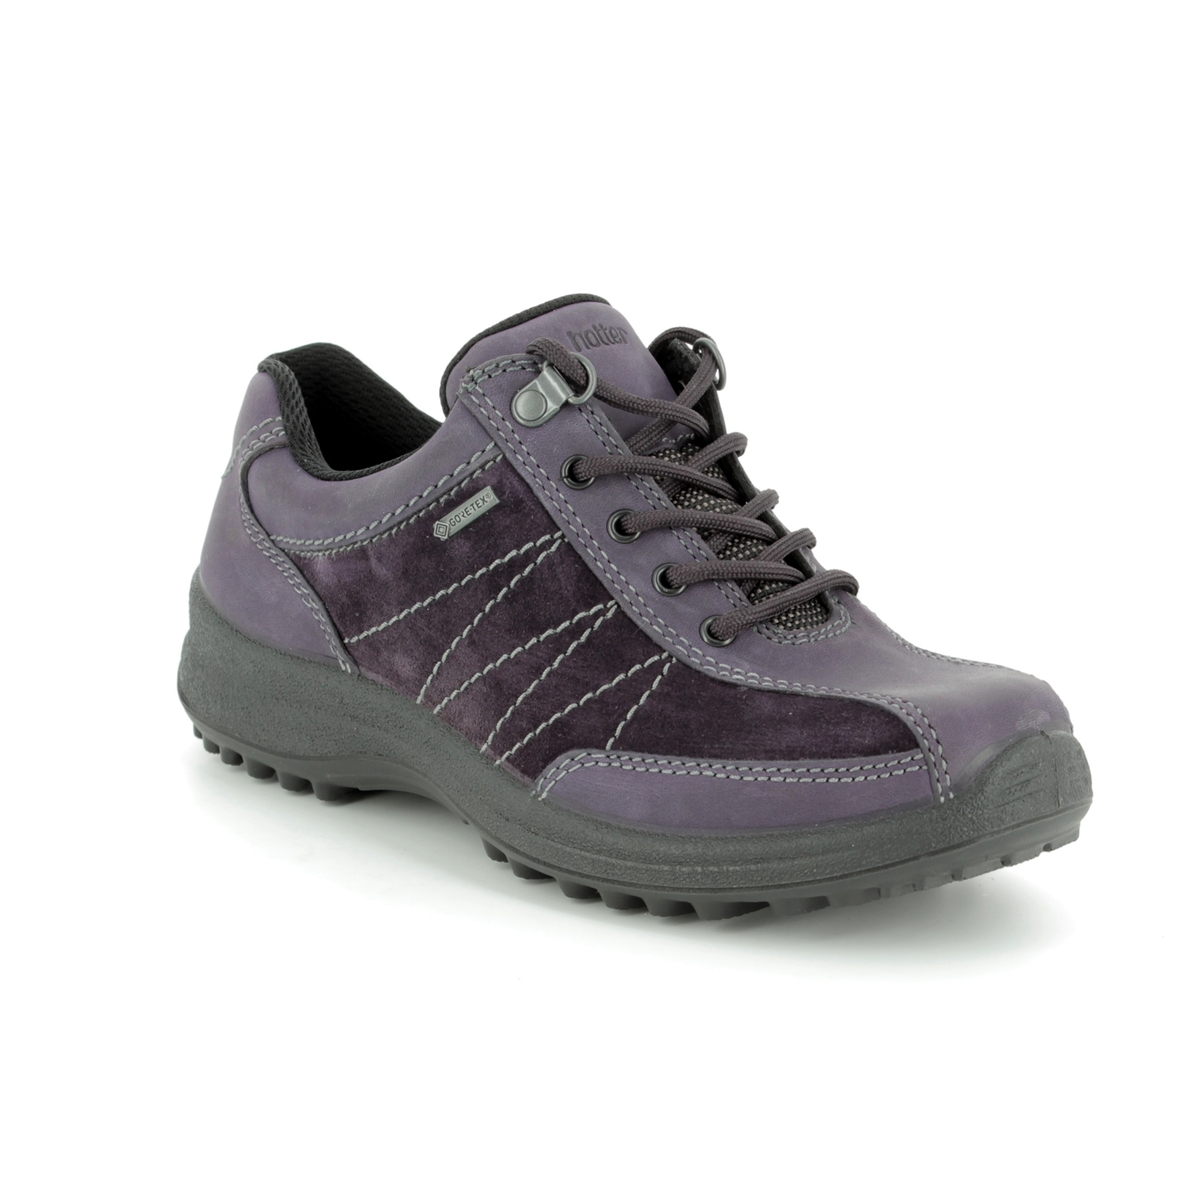 Hotter Womens Walking Shoes